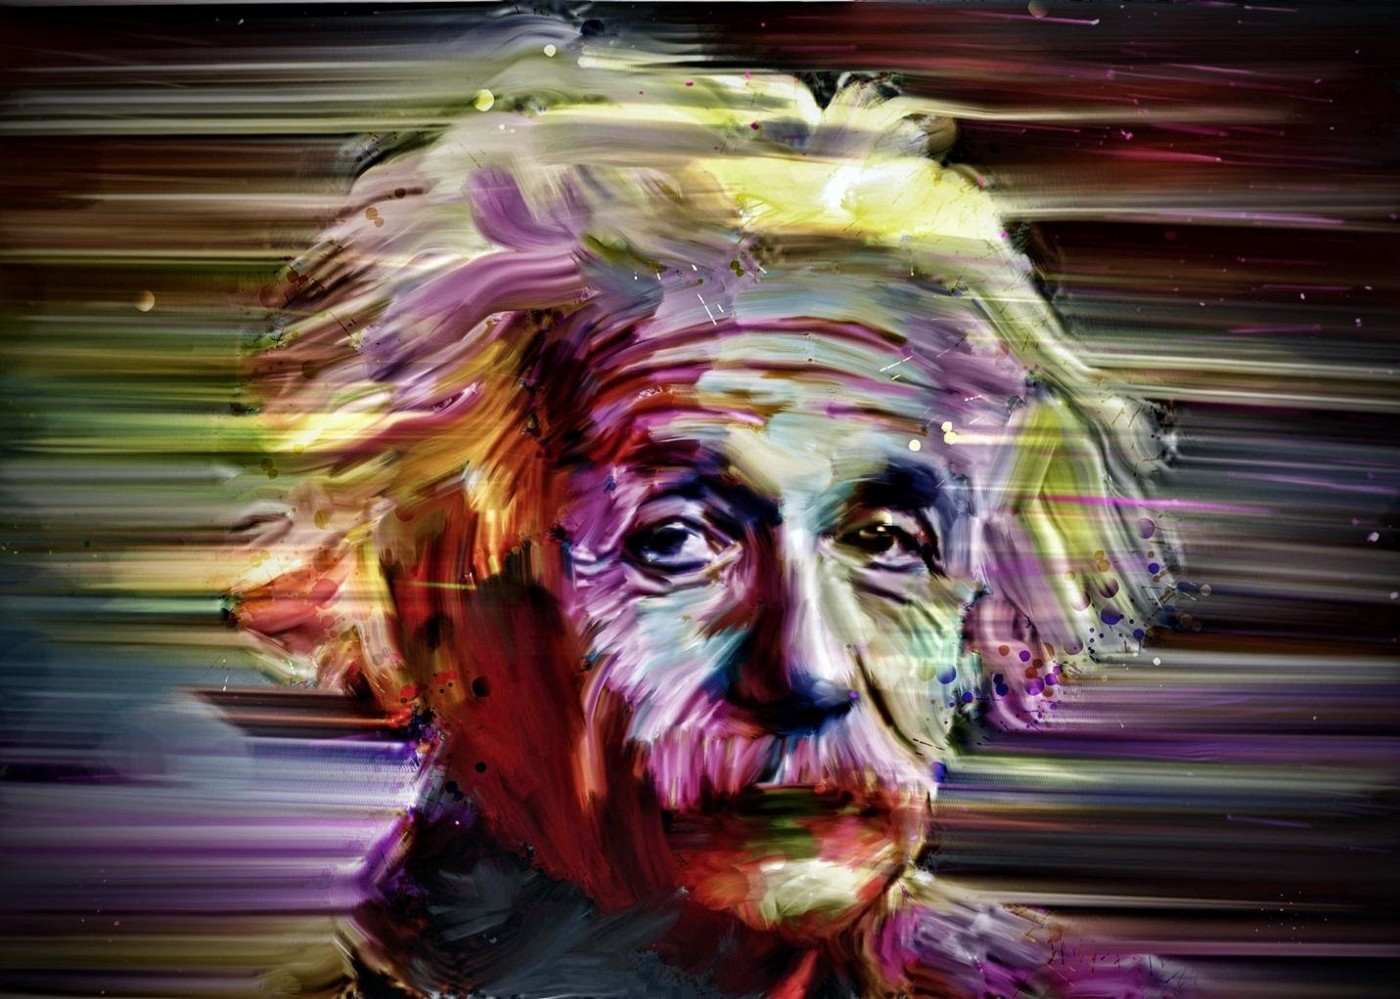 Artistic colorful illustration of Albert Einstein.